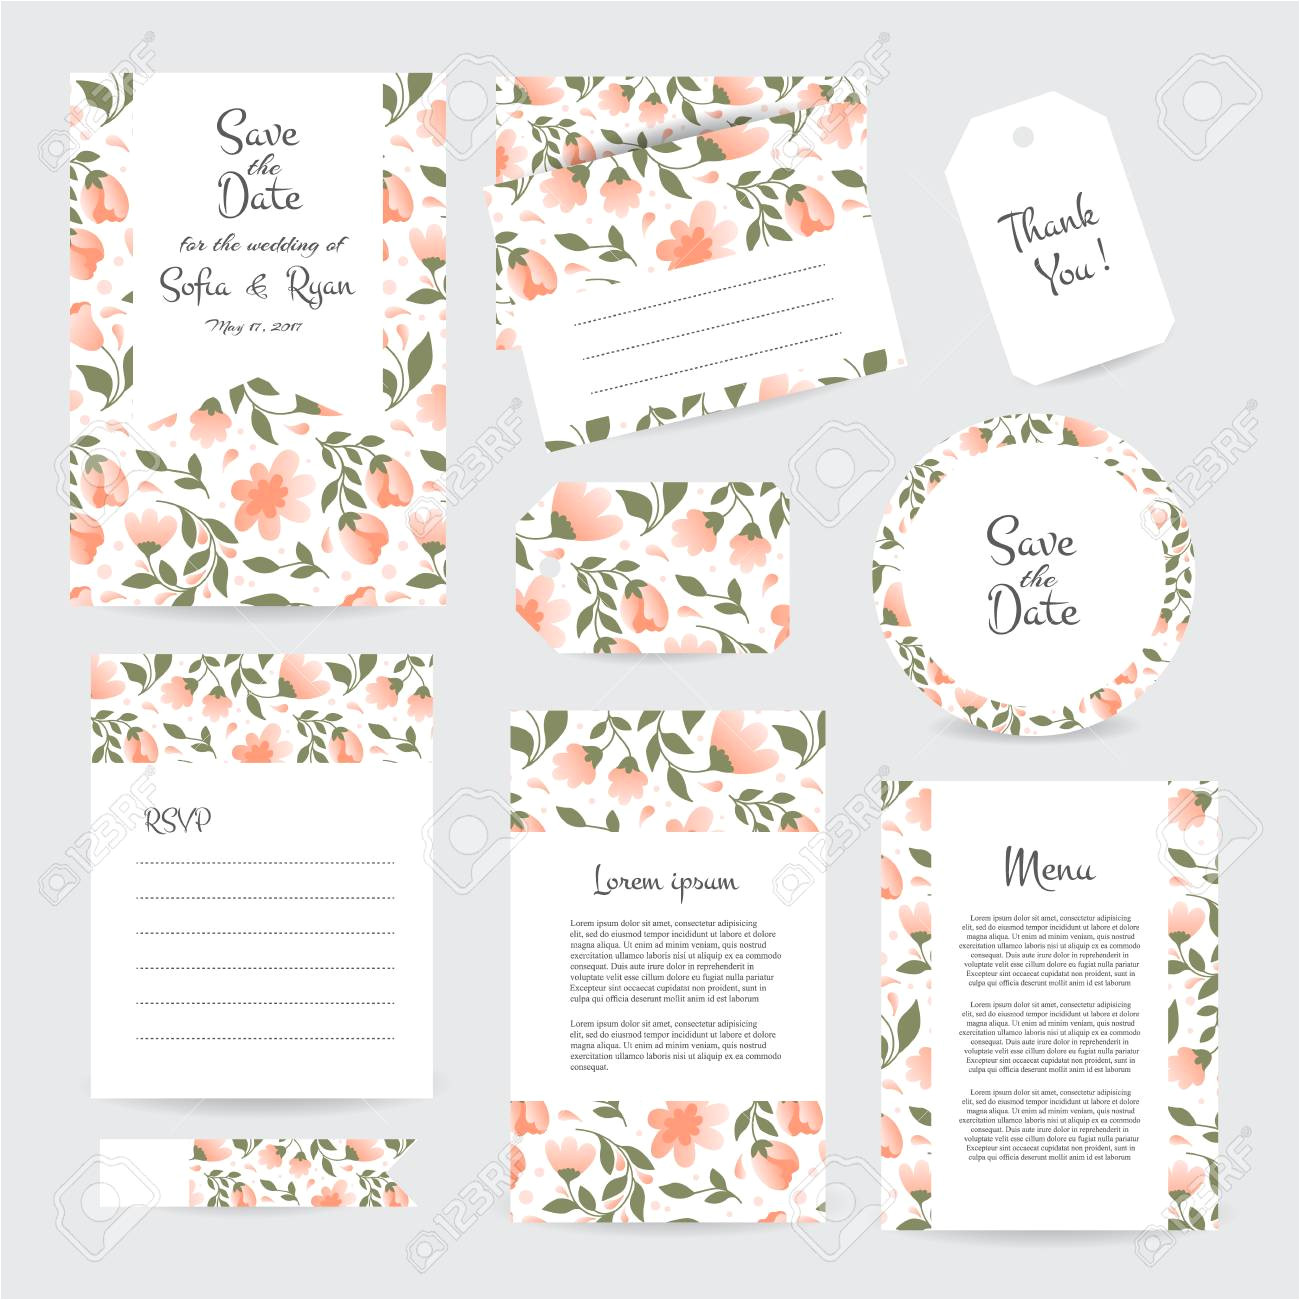 120958313 vector gentle wedding cards template with flower design invitation or save the date rsvp menu and th jpg